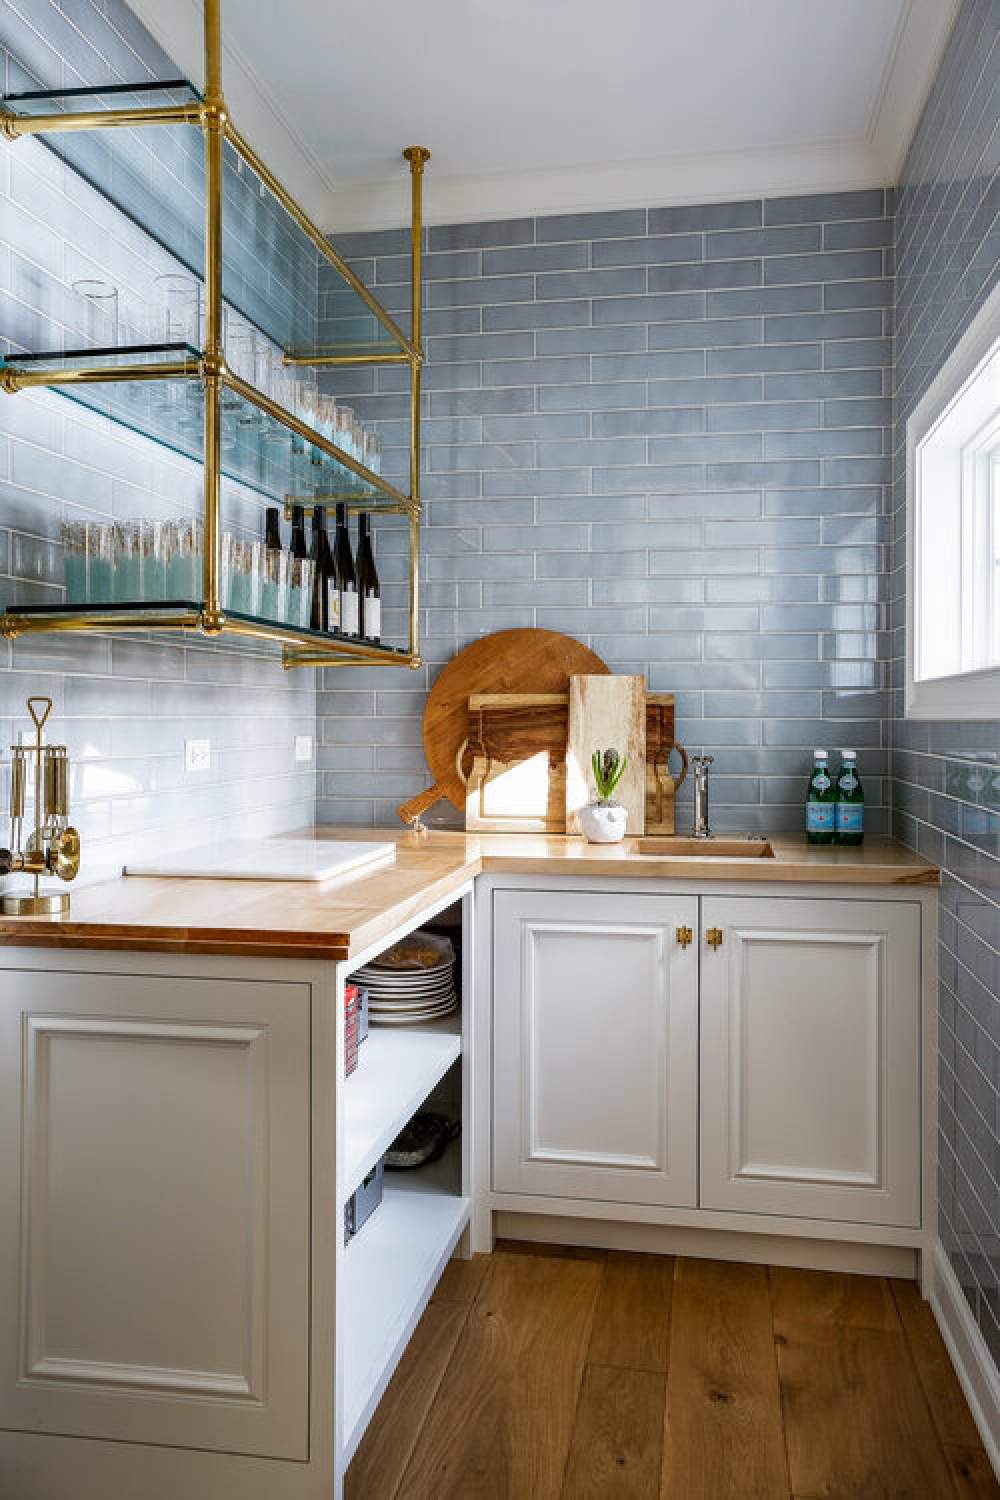 Beautiful blue kitchen ideas - tiled wall in a butler pantry with open shelving and wood counters - design by Edward Deegan Architects. #butlerpantry #bluetile #bluebacksplash